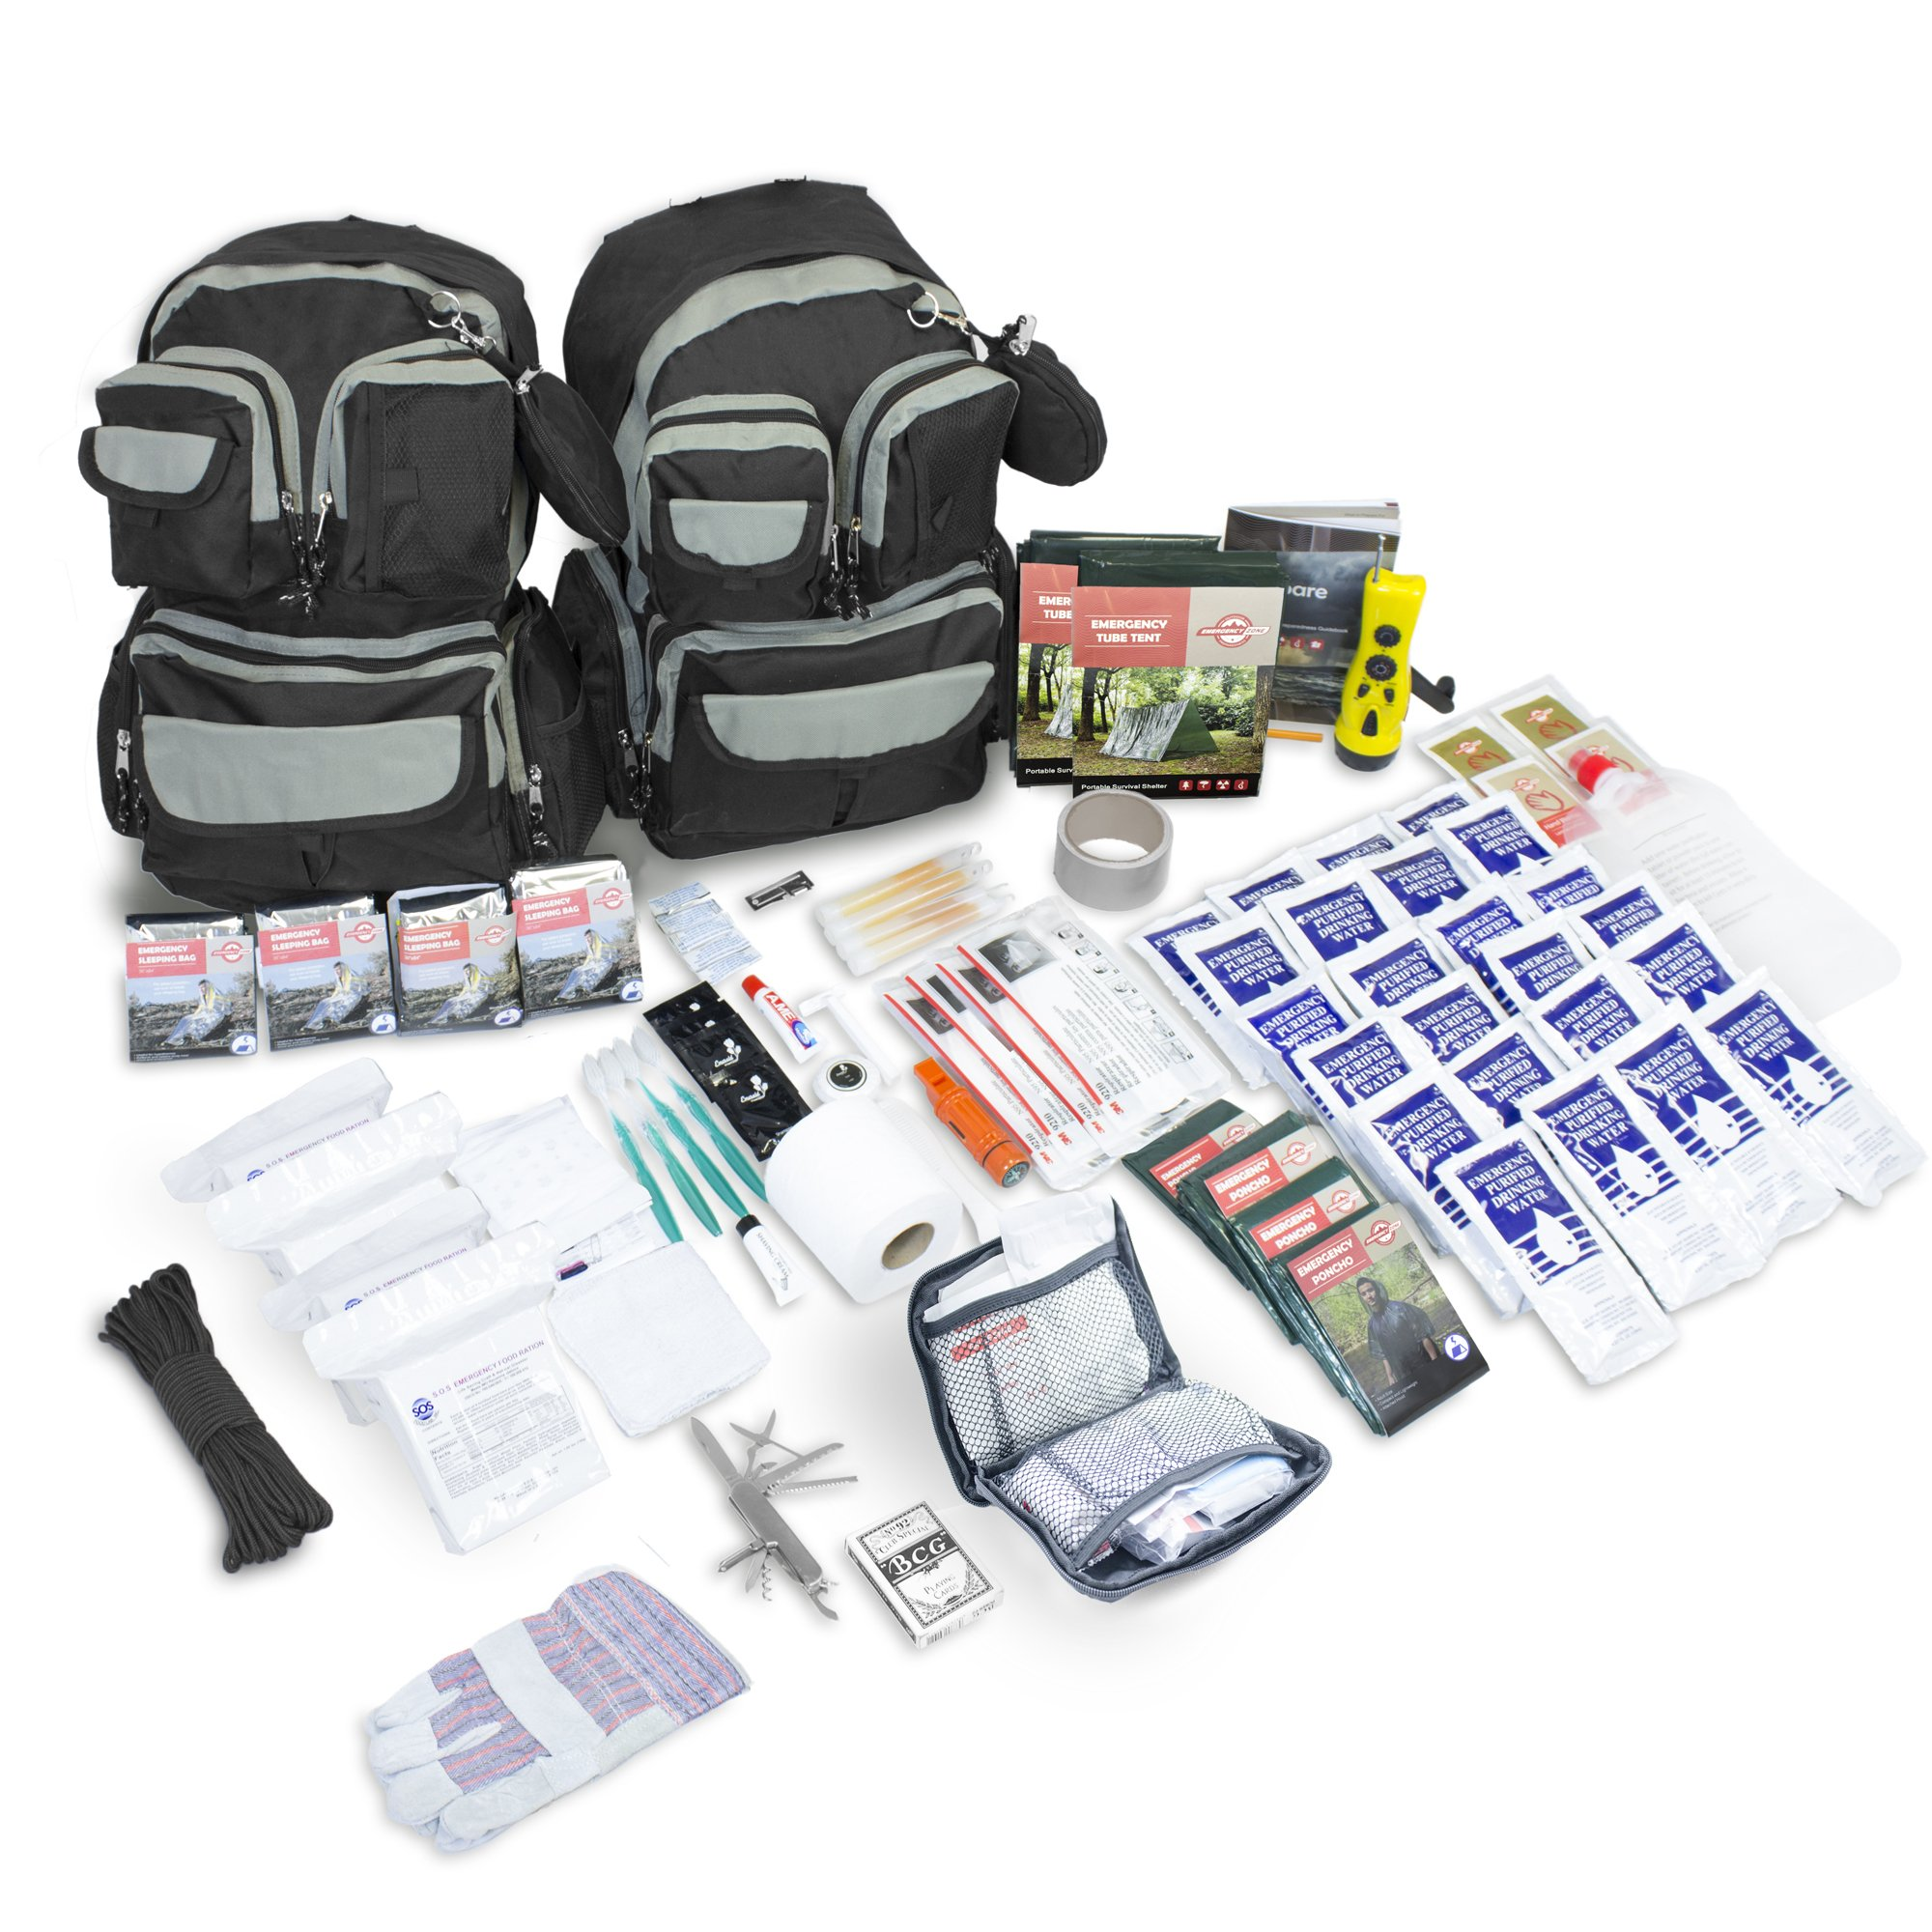 Emergency Zone Urban Survival Bug Out Bag, Choose from 2 or 4 Person Emergency Disaster Kit, 72-hour, Brand (4 Person)